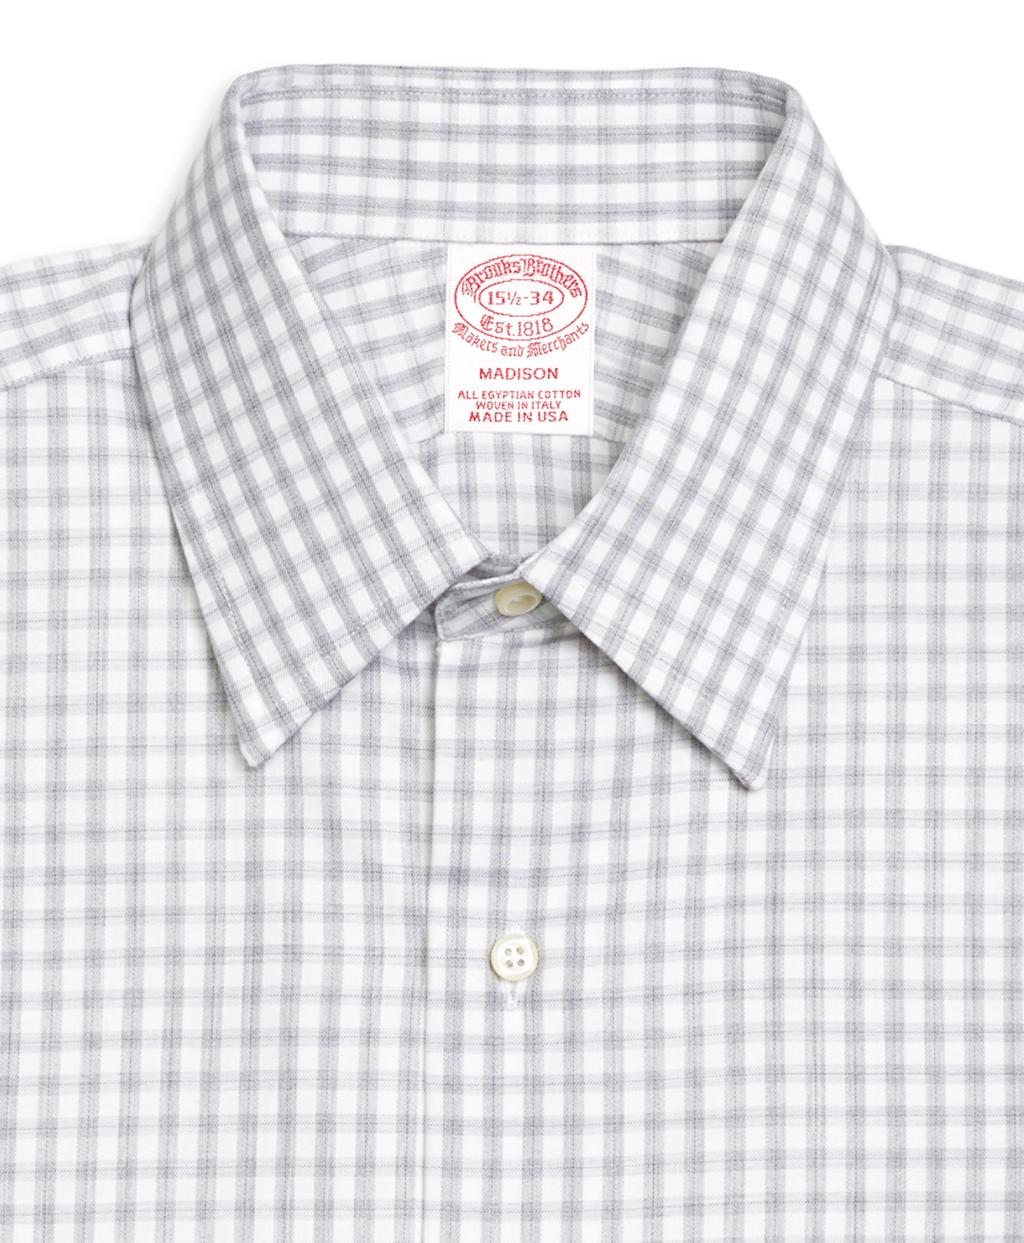 Lyst brooks brothers madison fit heathered gingham for Gingham french cuff shirt